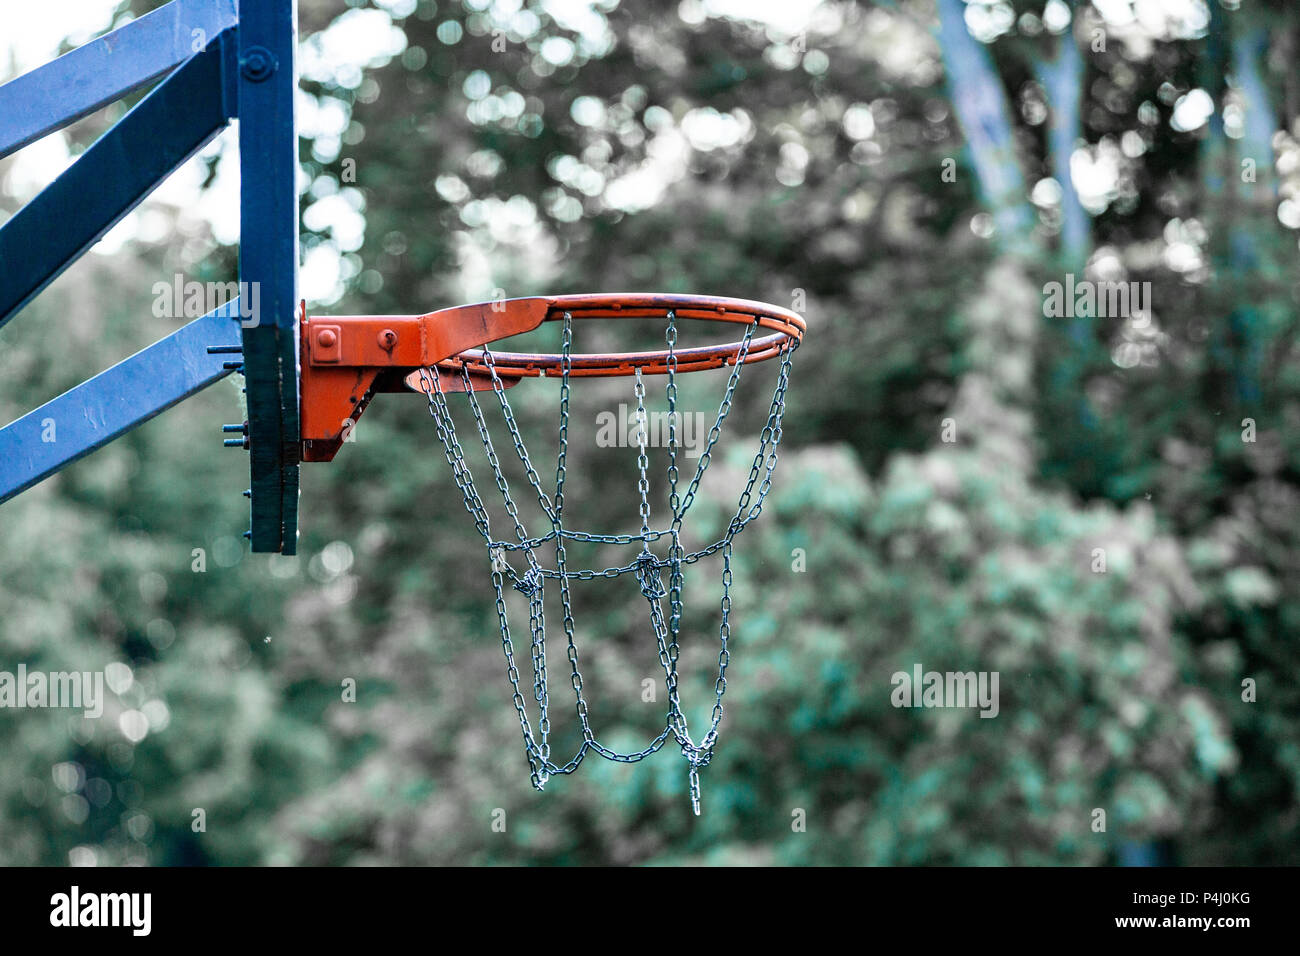 Picture of a basketball field goal with the trees in background. - Stock Image